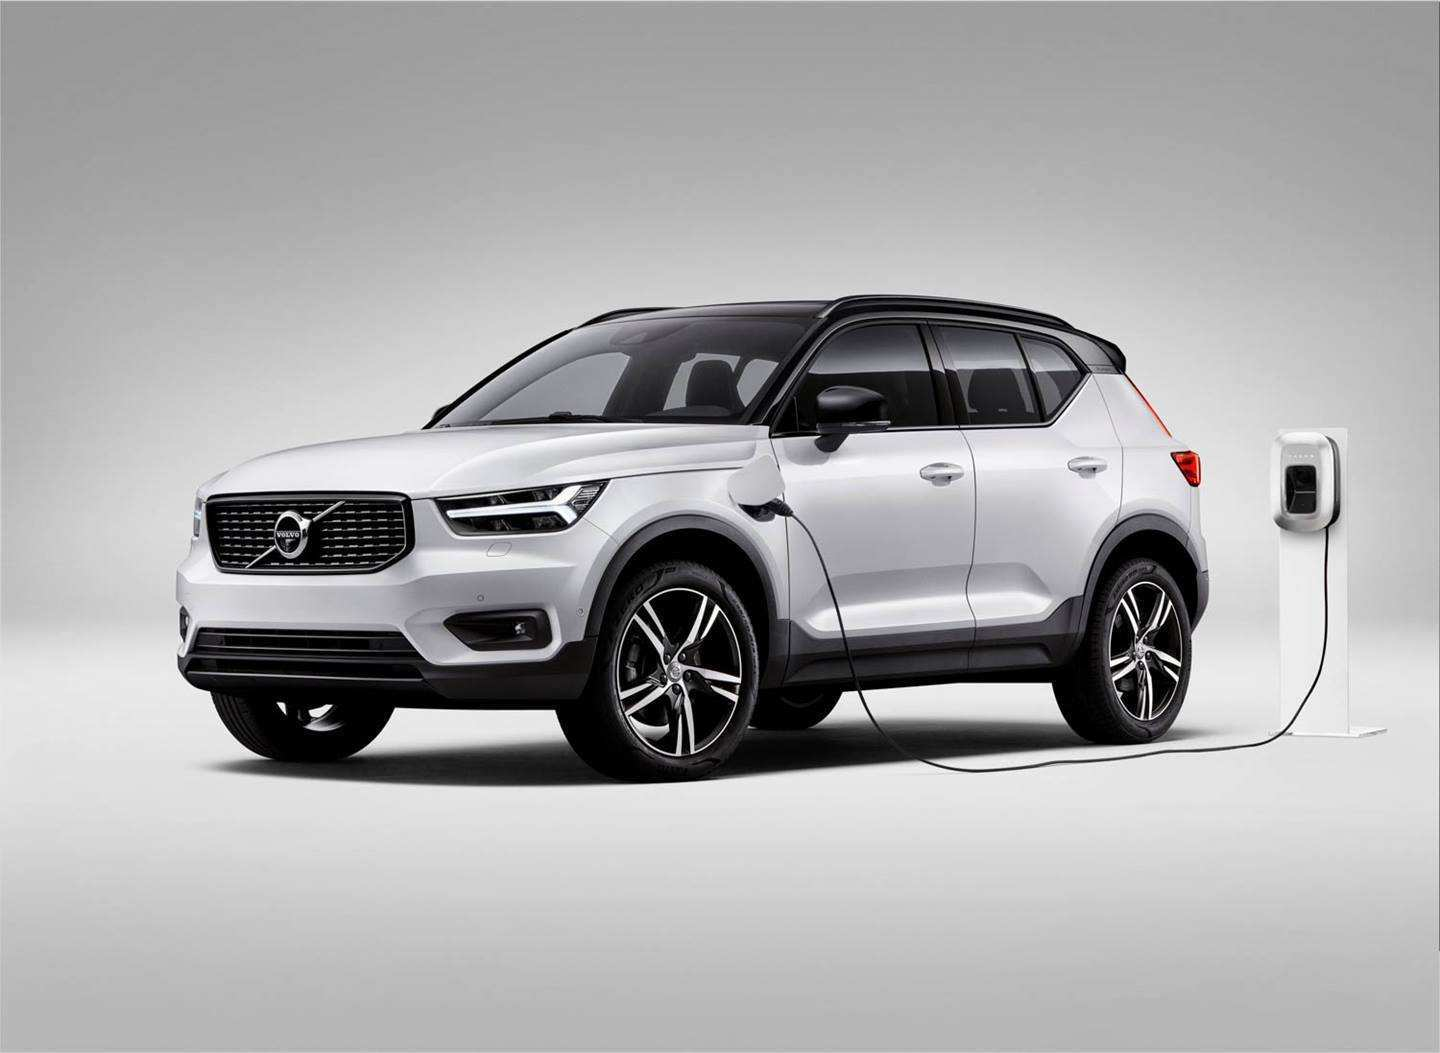 23 New Volvo All Electric Cars By 2019 Pictures